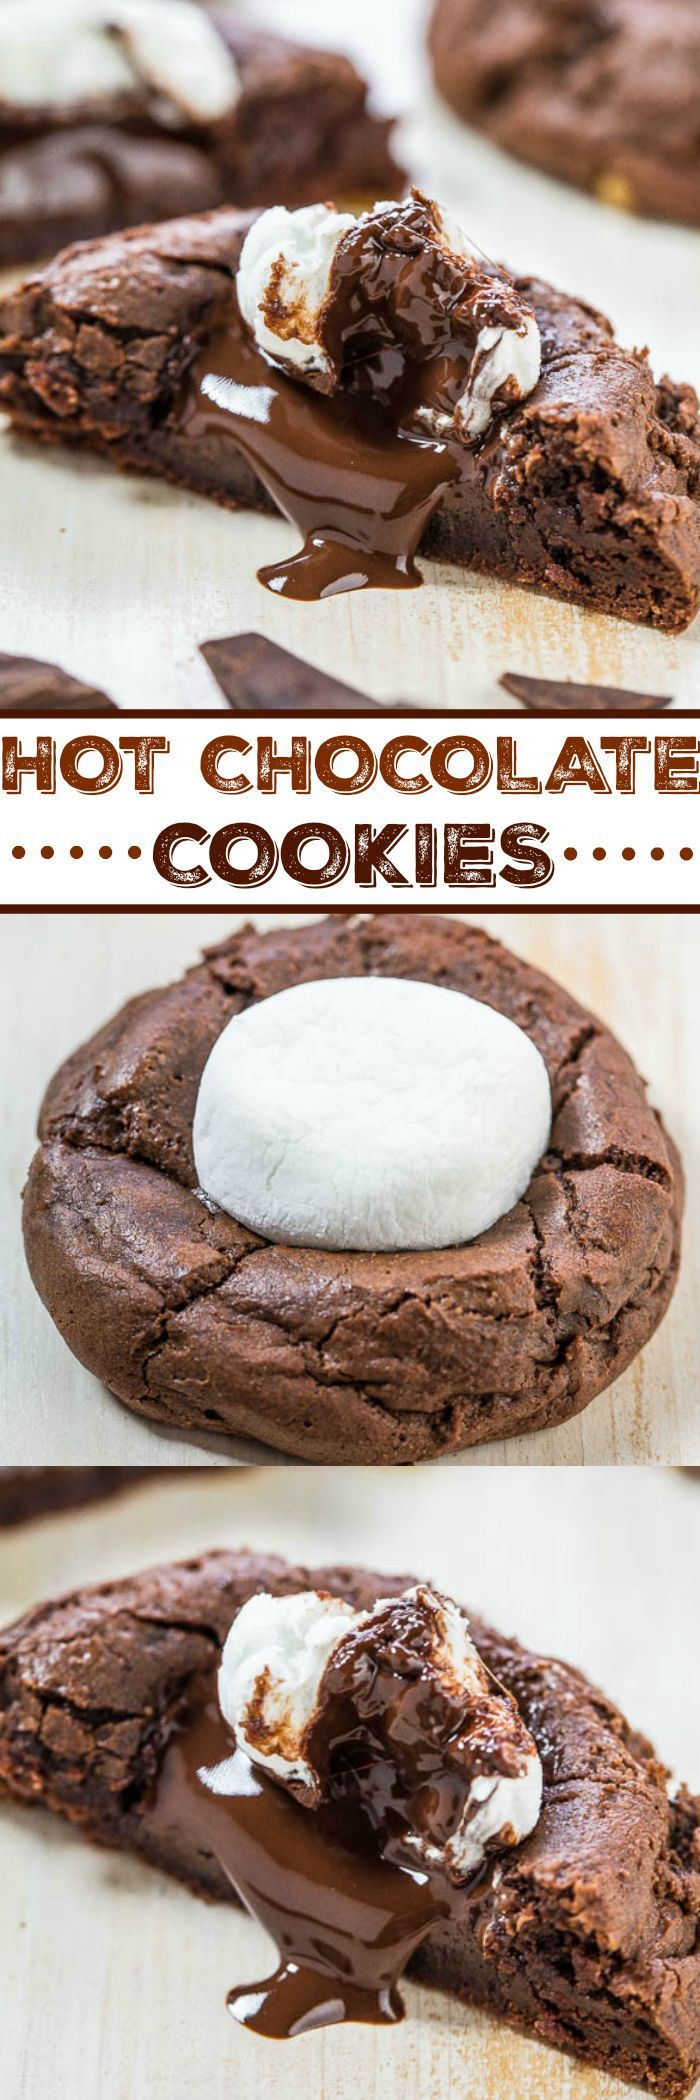 Hot Chocolate Cookies - Rich chocolate cookies topped with a hunk of melted dark chocolate and toasted marshmallows!! Best 'hot chocolate' you'll ever have!!